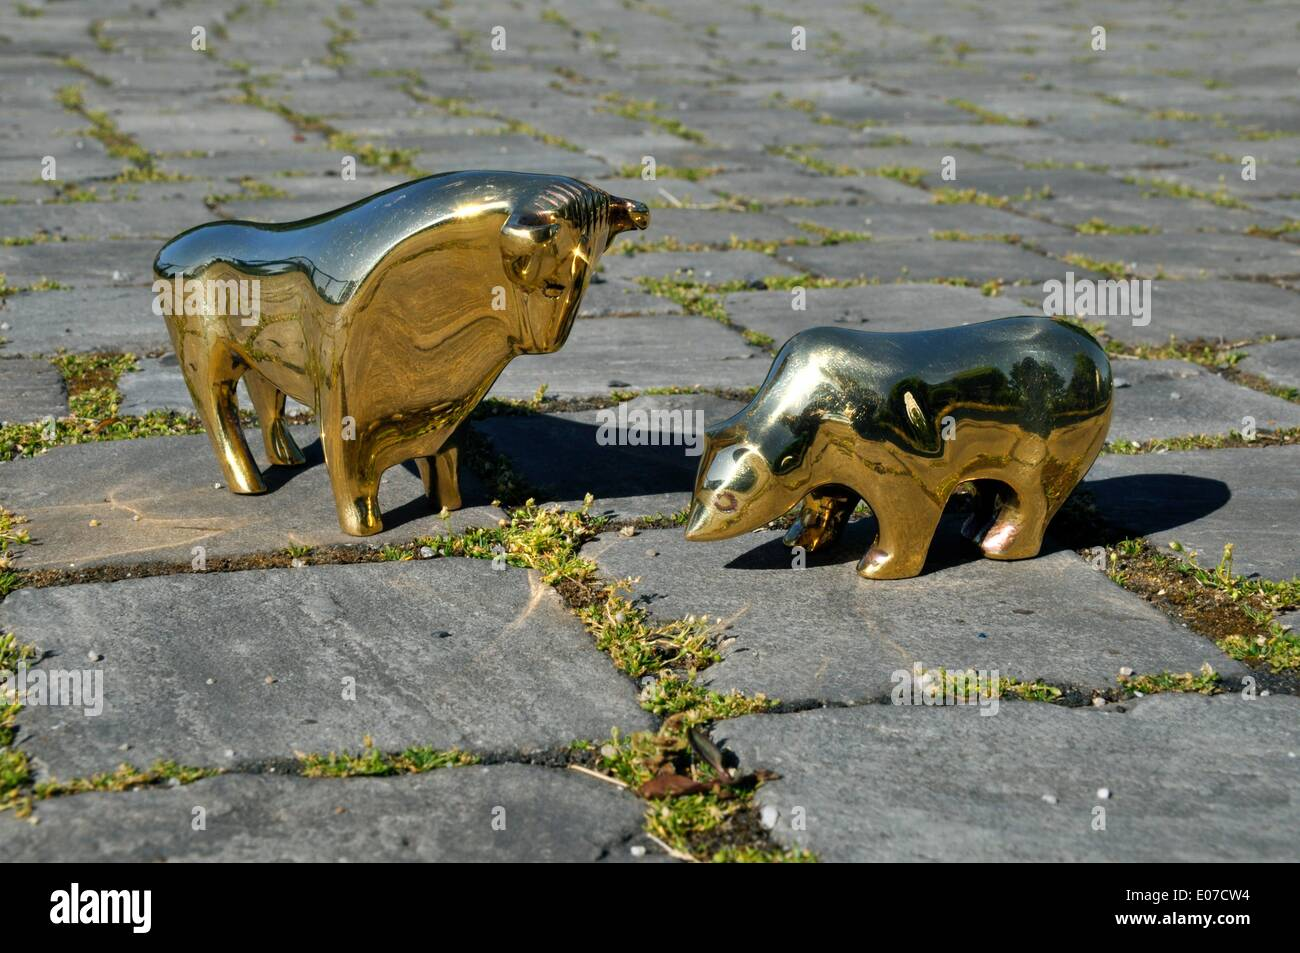 Illustration - Golden midget figures of the bear and the bull stand on a street in Germany, 02 June 2011. The bear Stock Photo